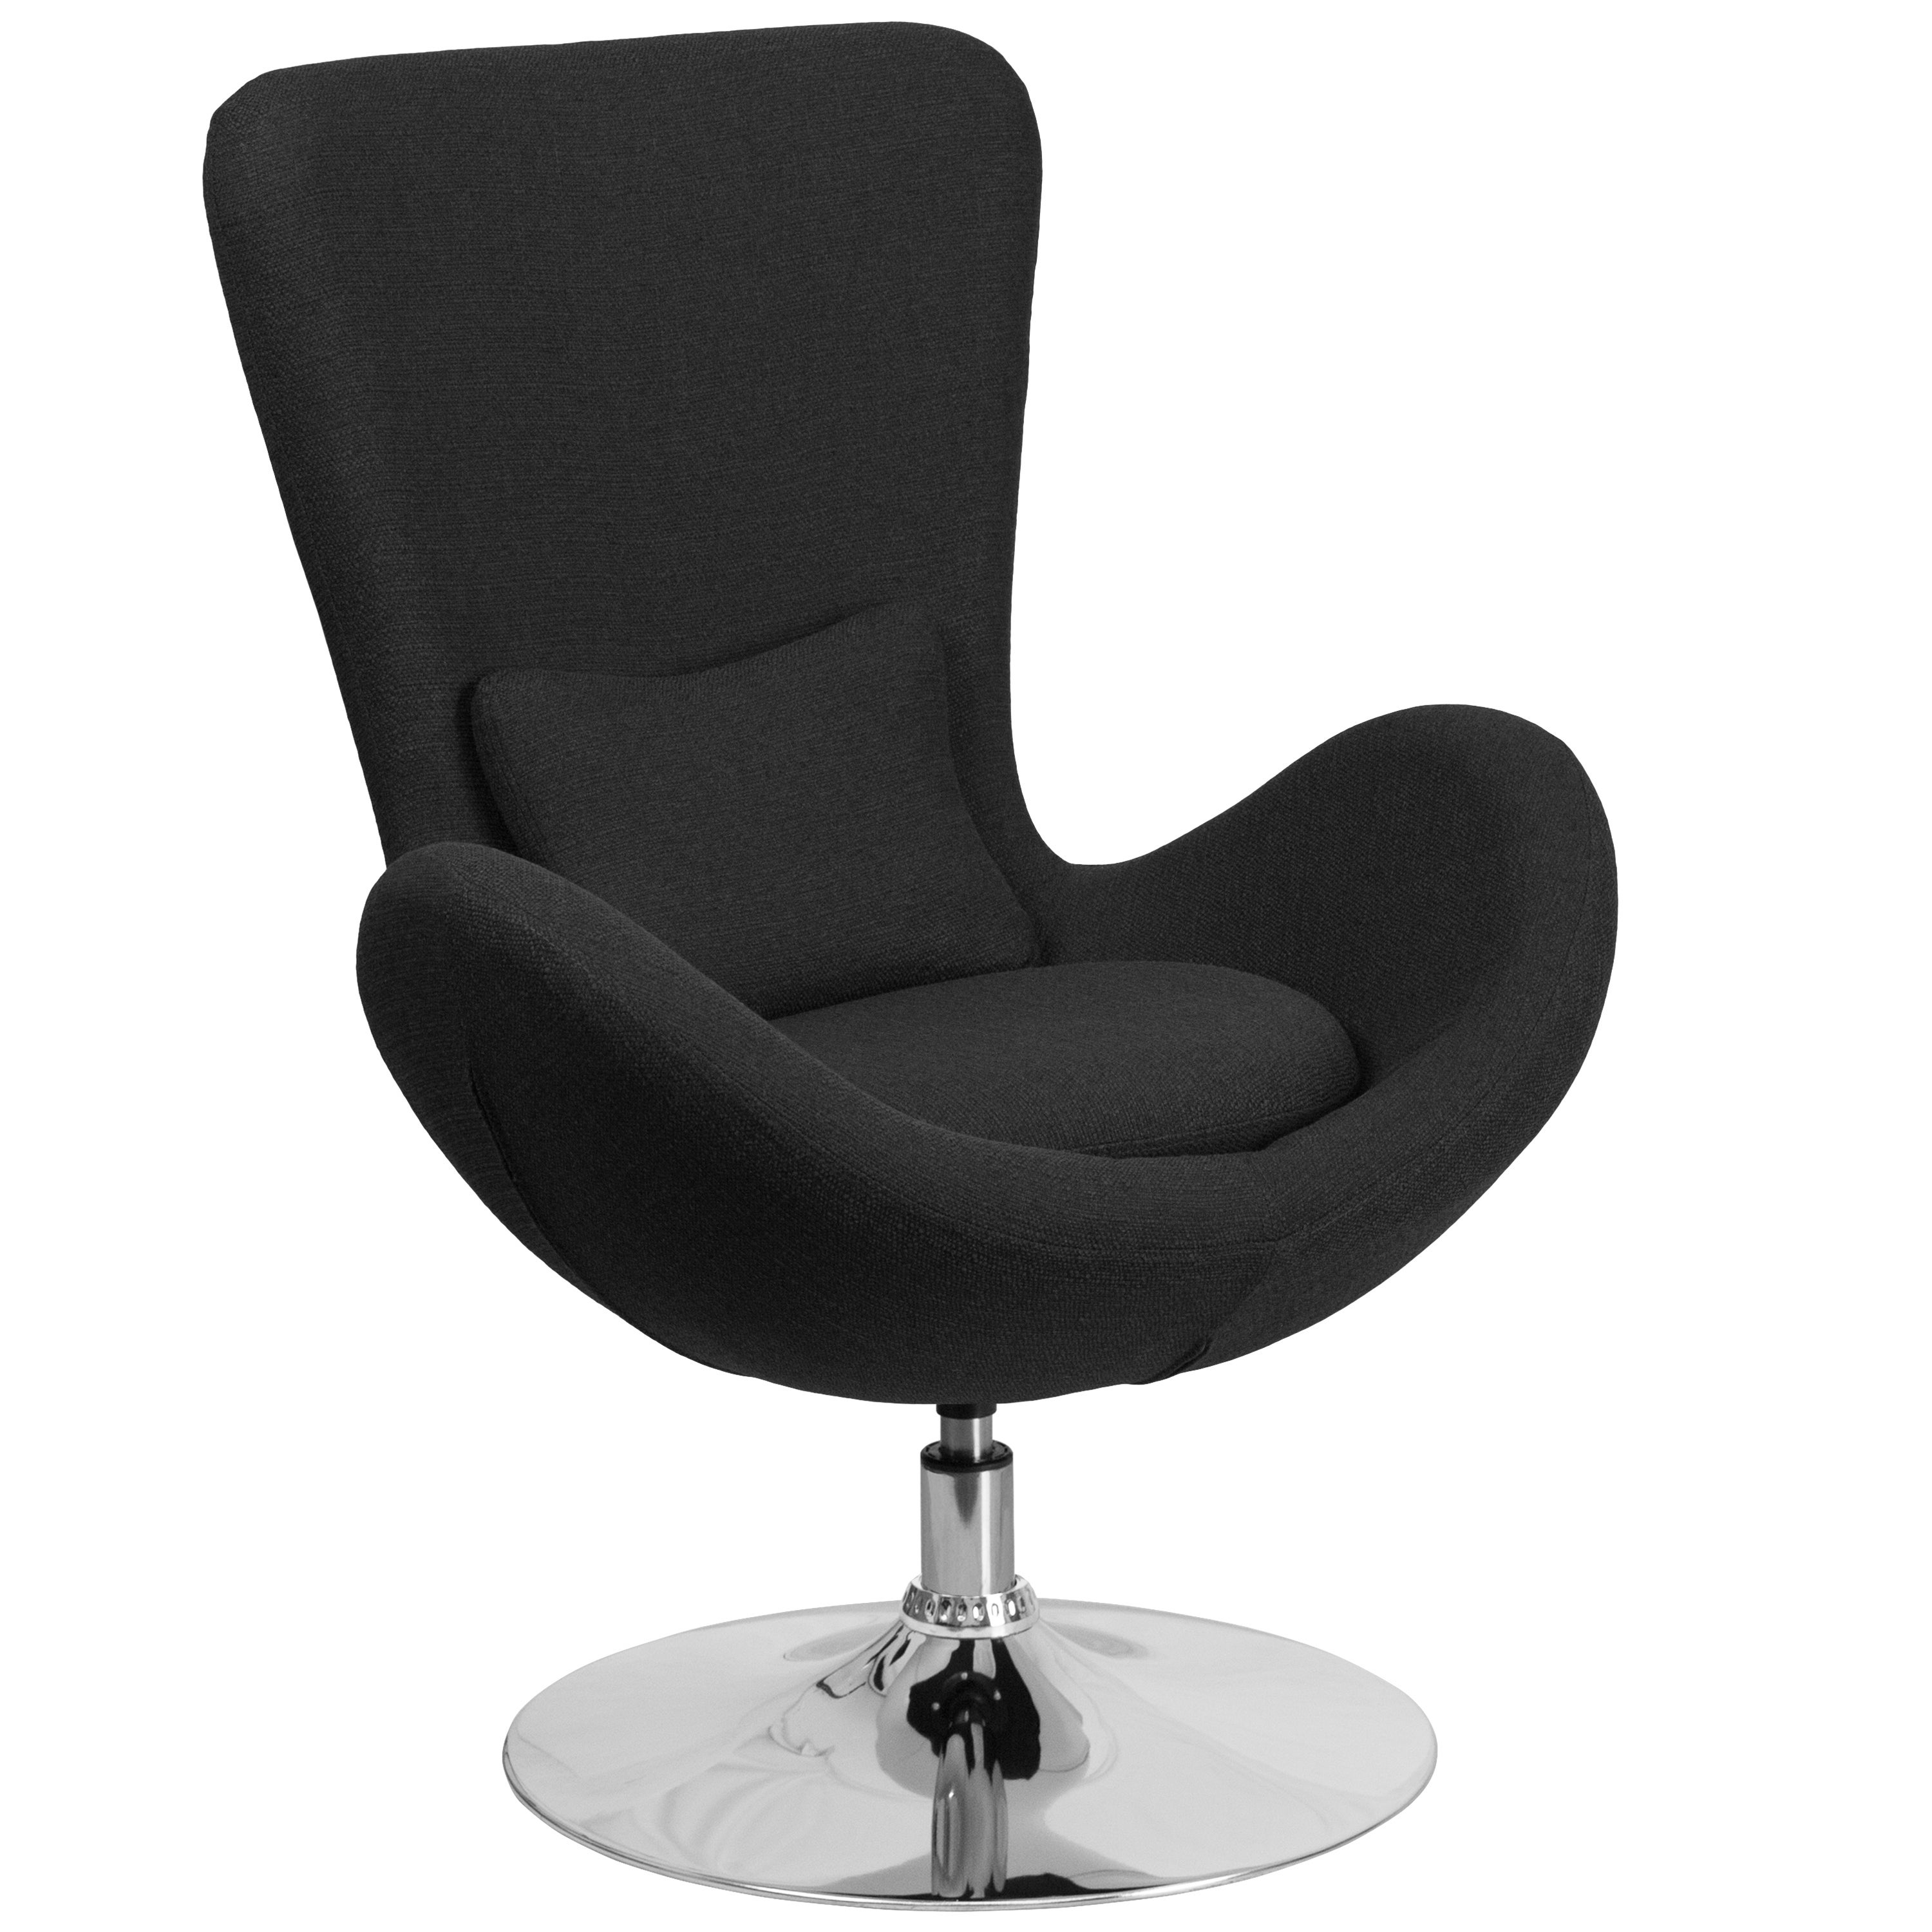 Curved wing design black fabric upholstered swivel adjustable living room accent chair